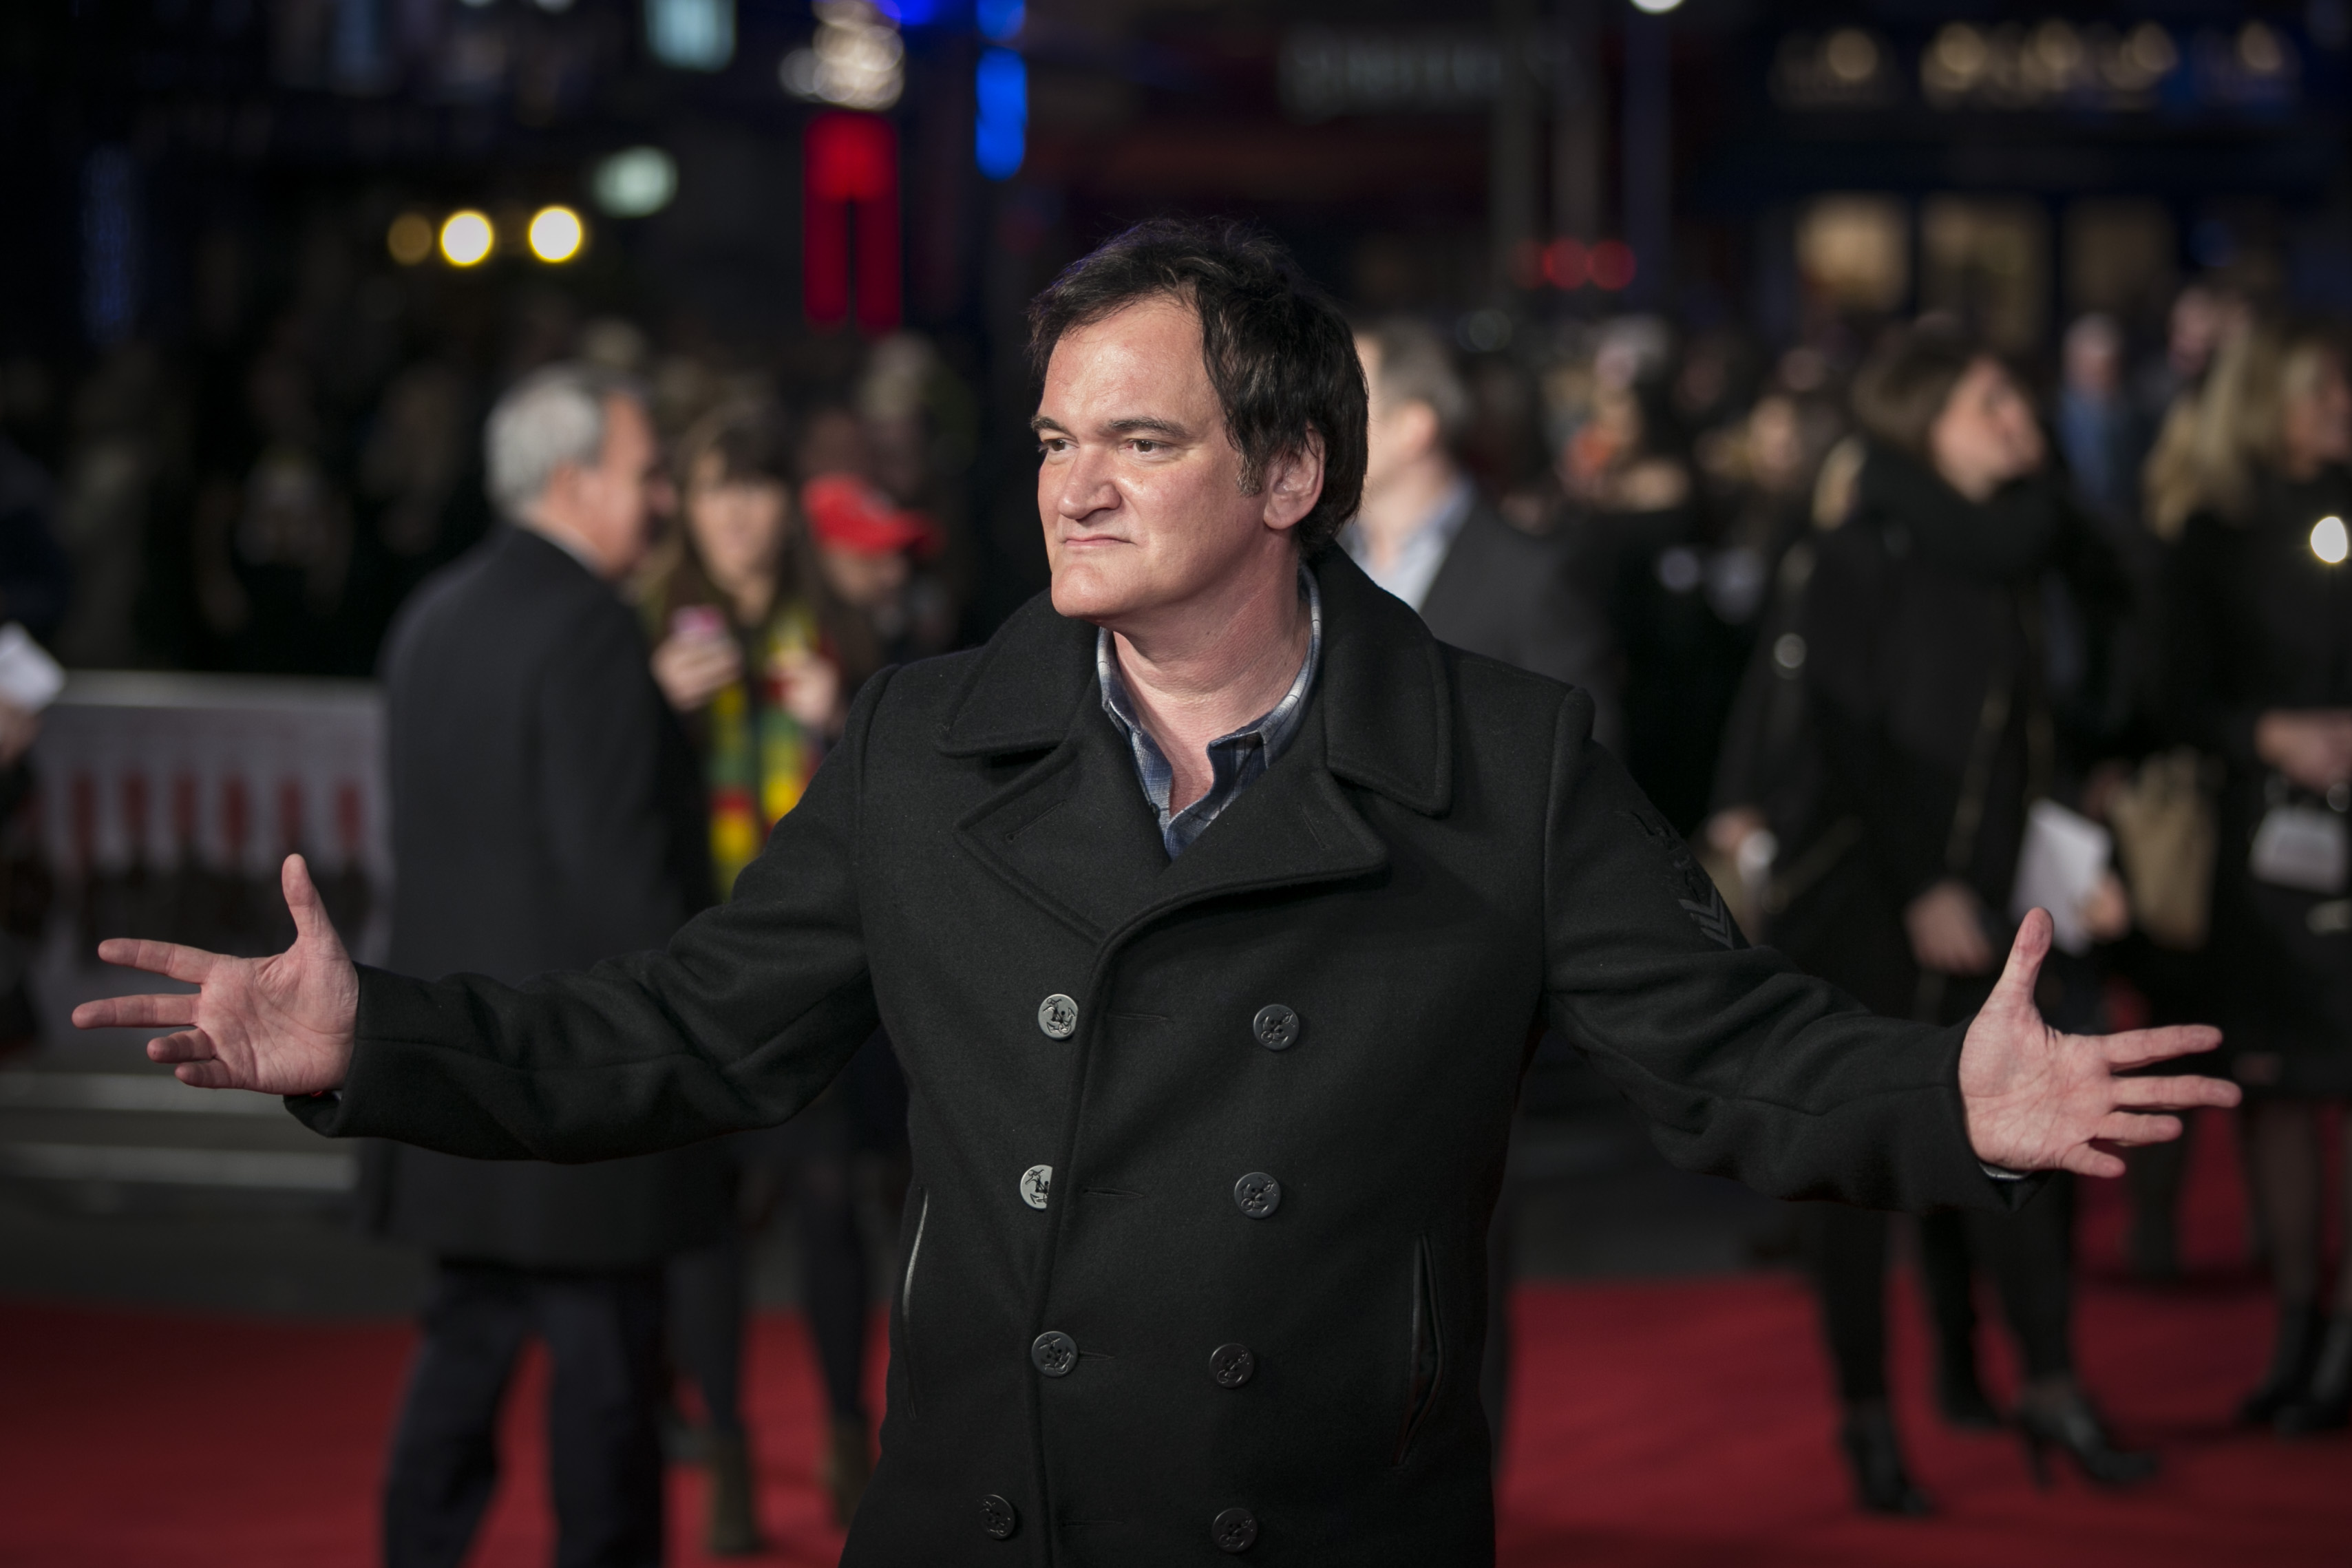 Quentin Tarantino at the London premiere of  The Hateful Eight.